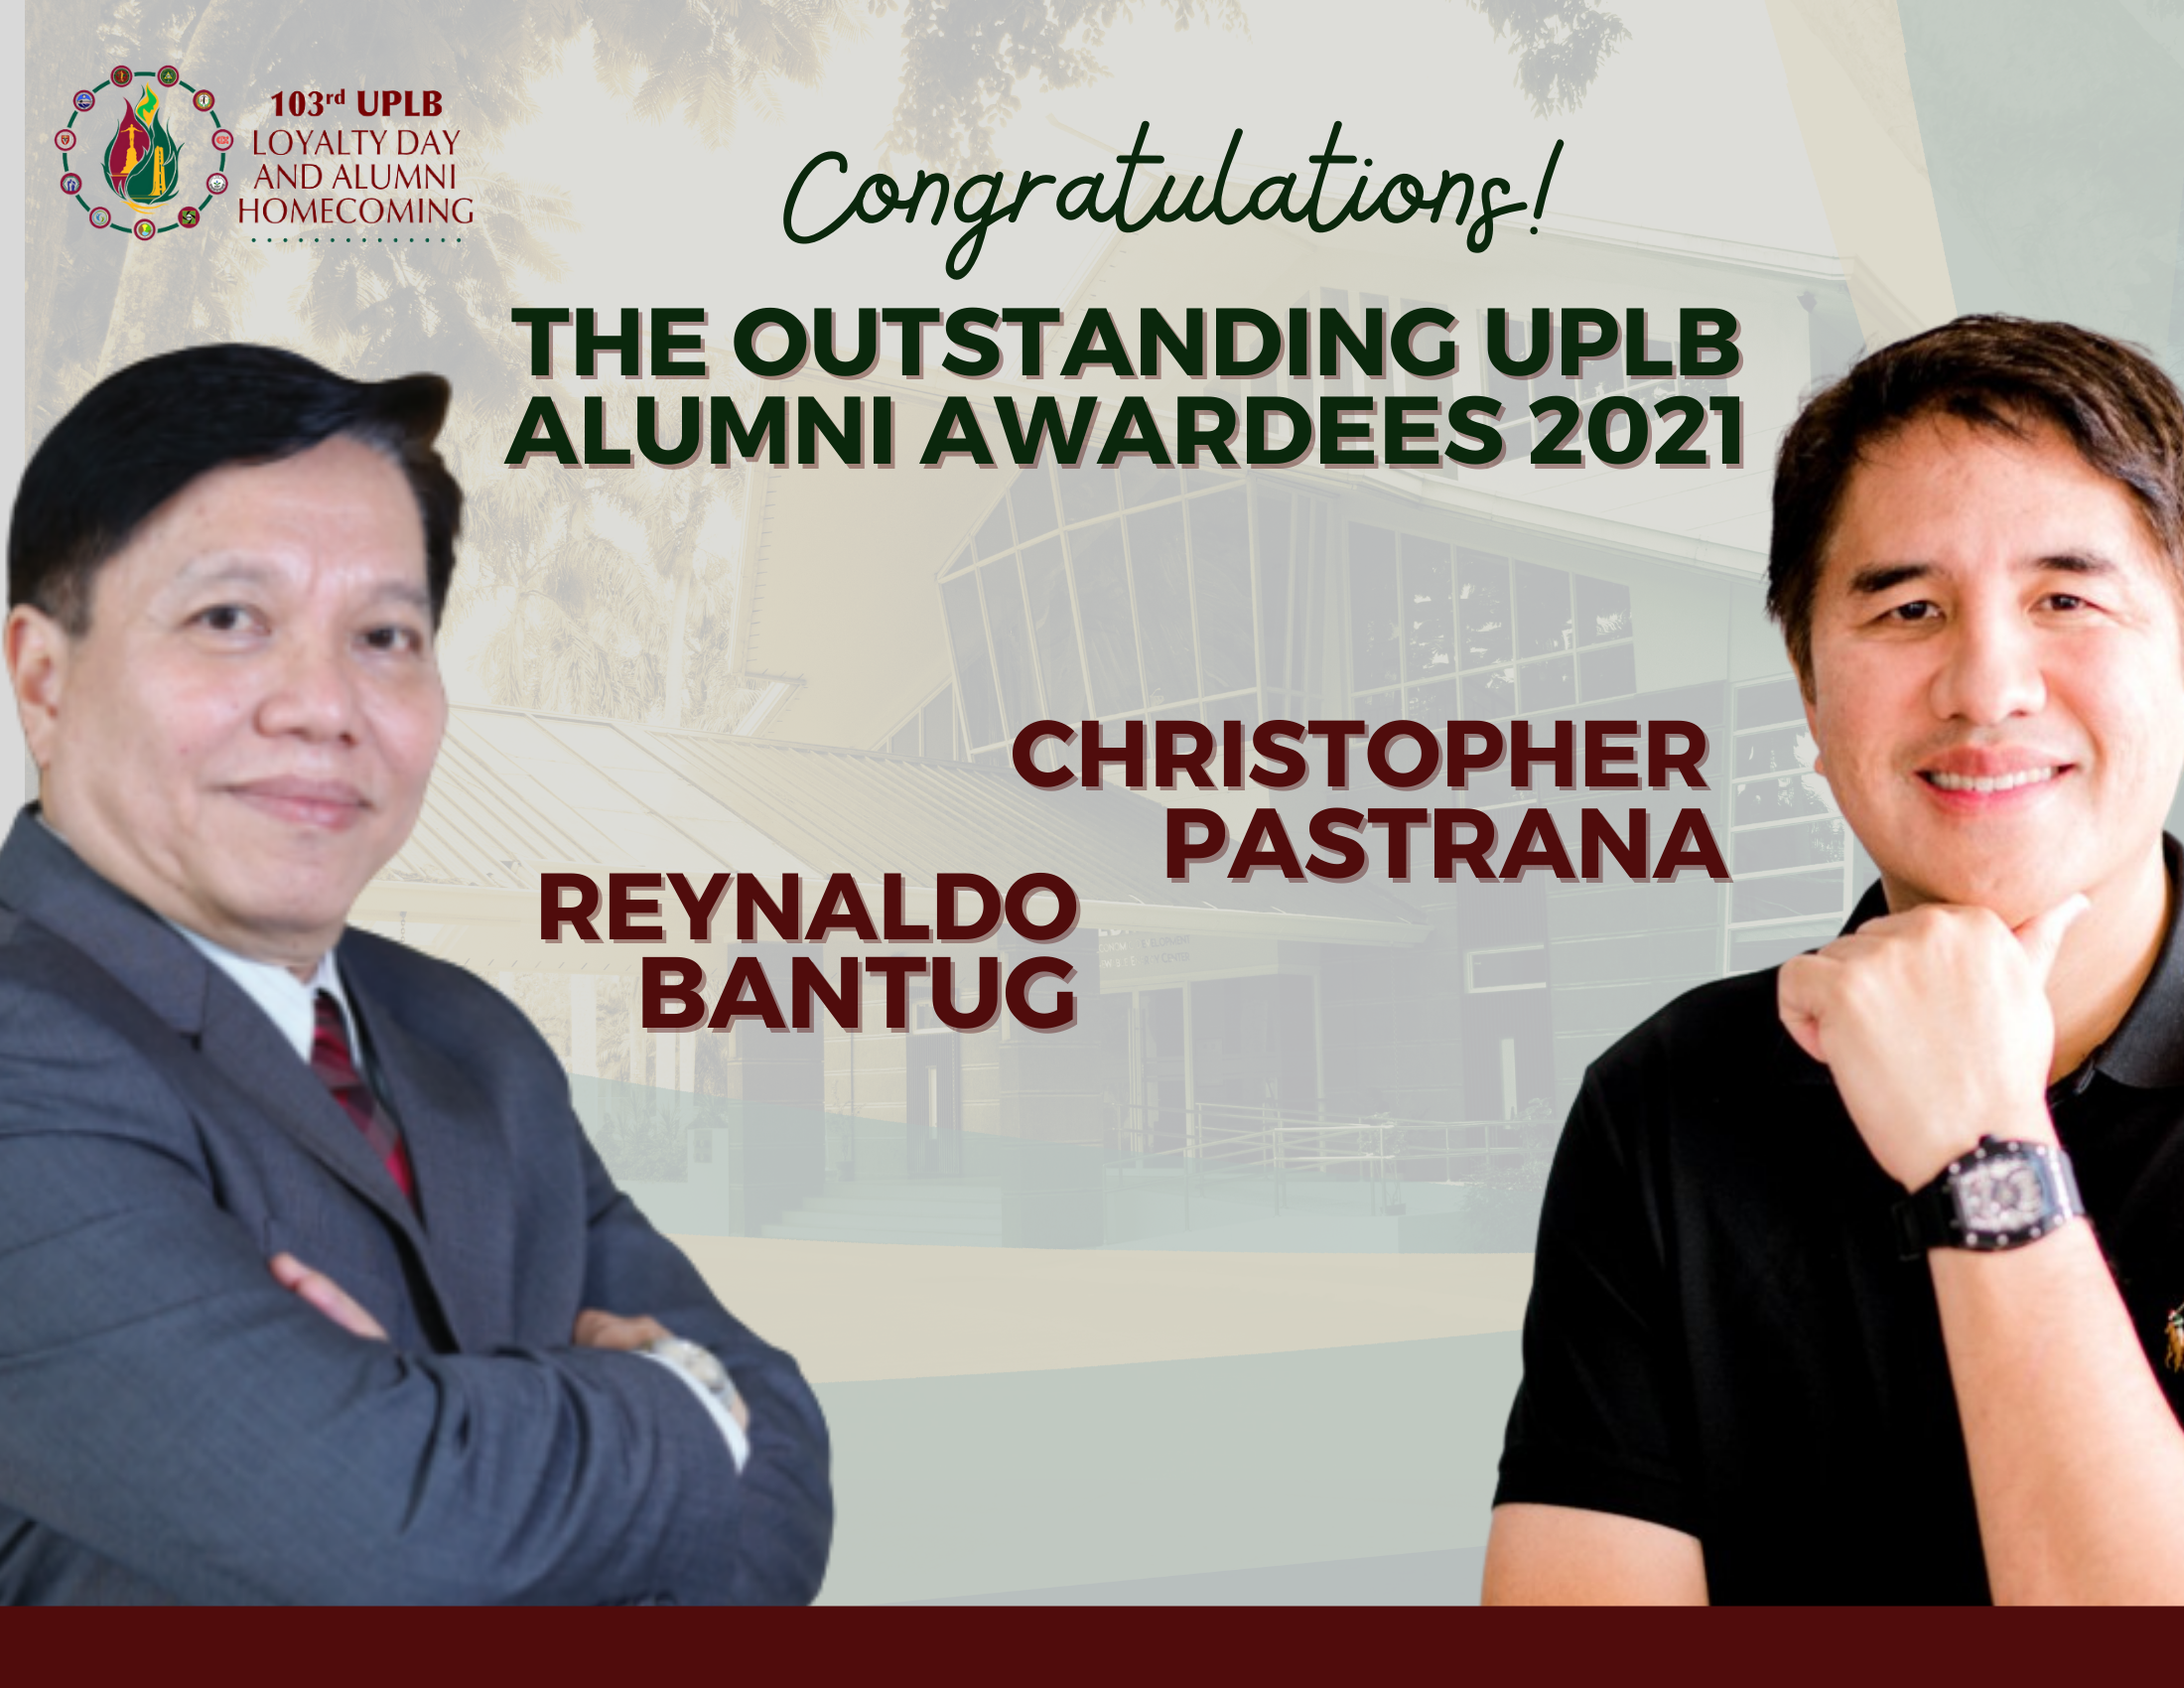 Bantug and Pastrana Recognized as The Outstanding UPLB Alumni Awardees 2021